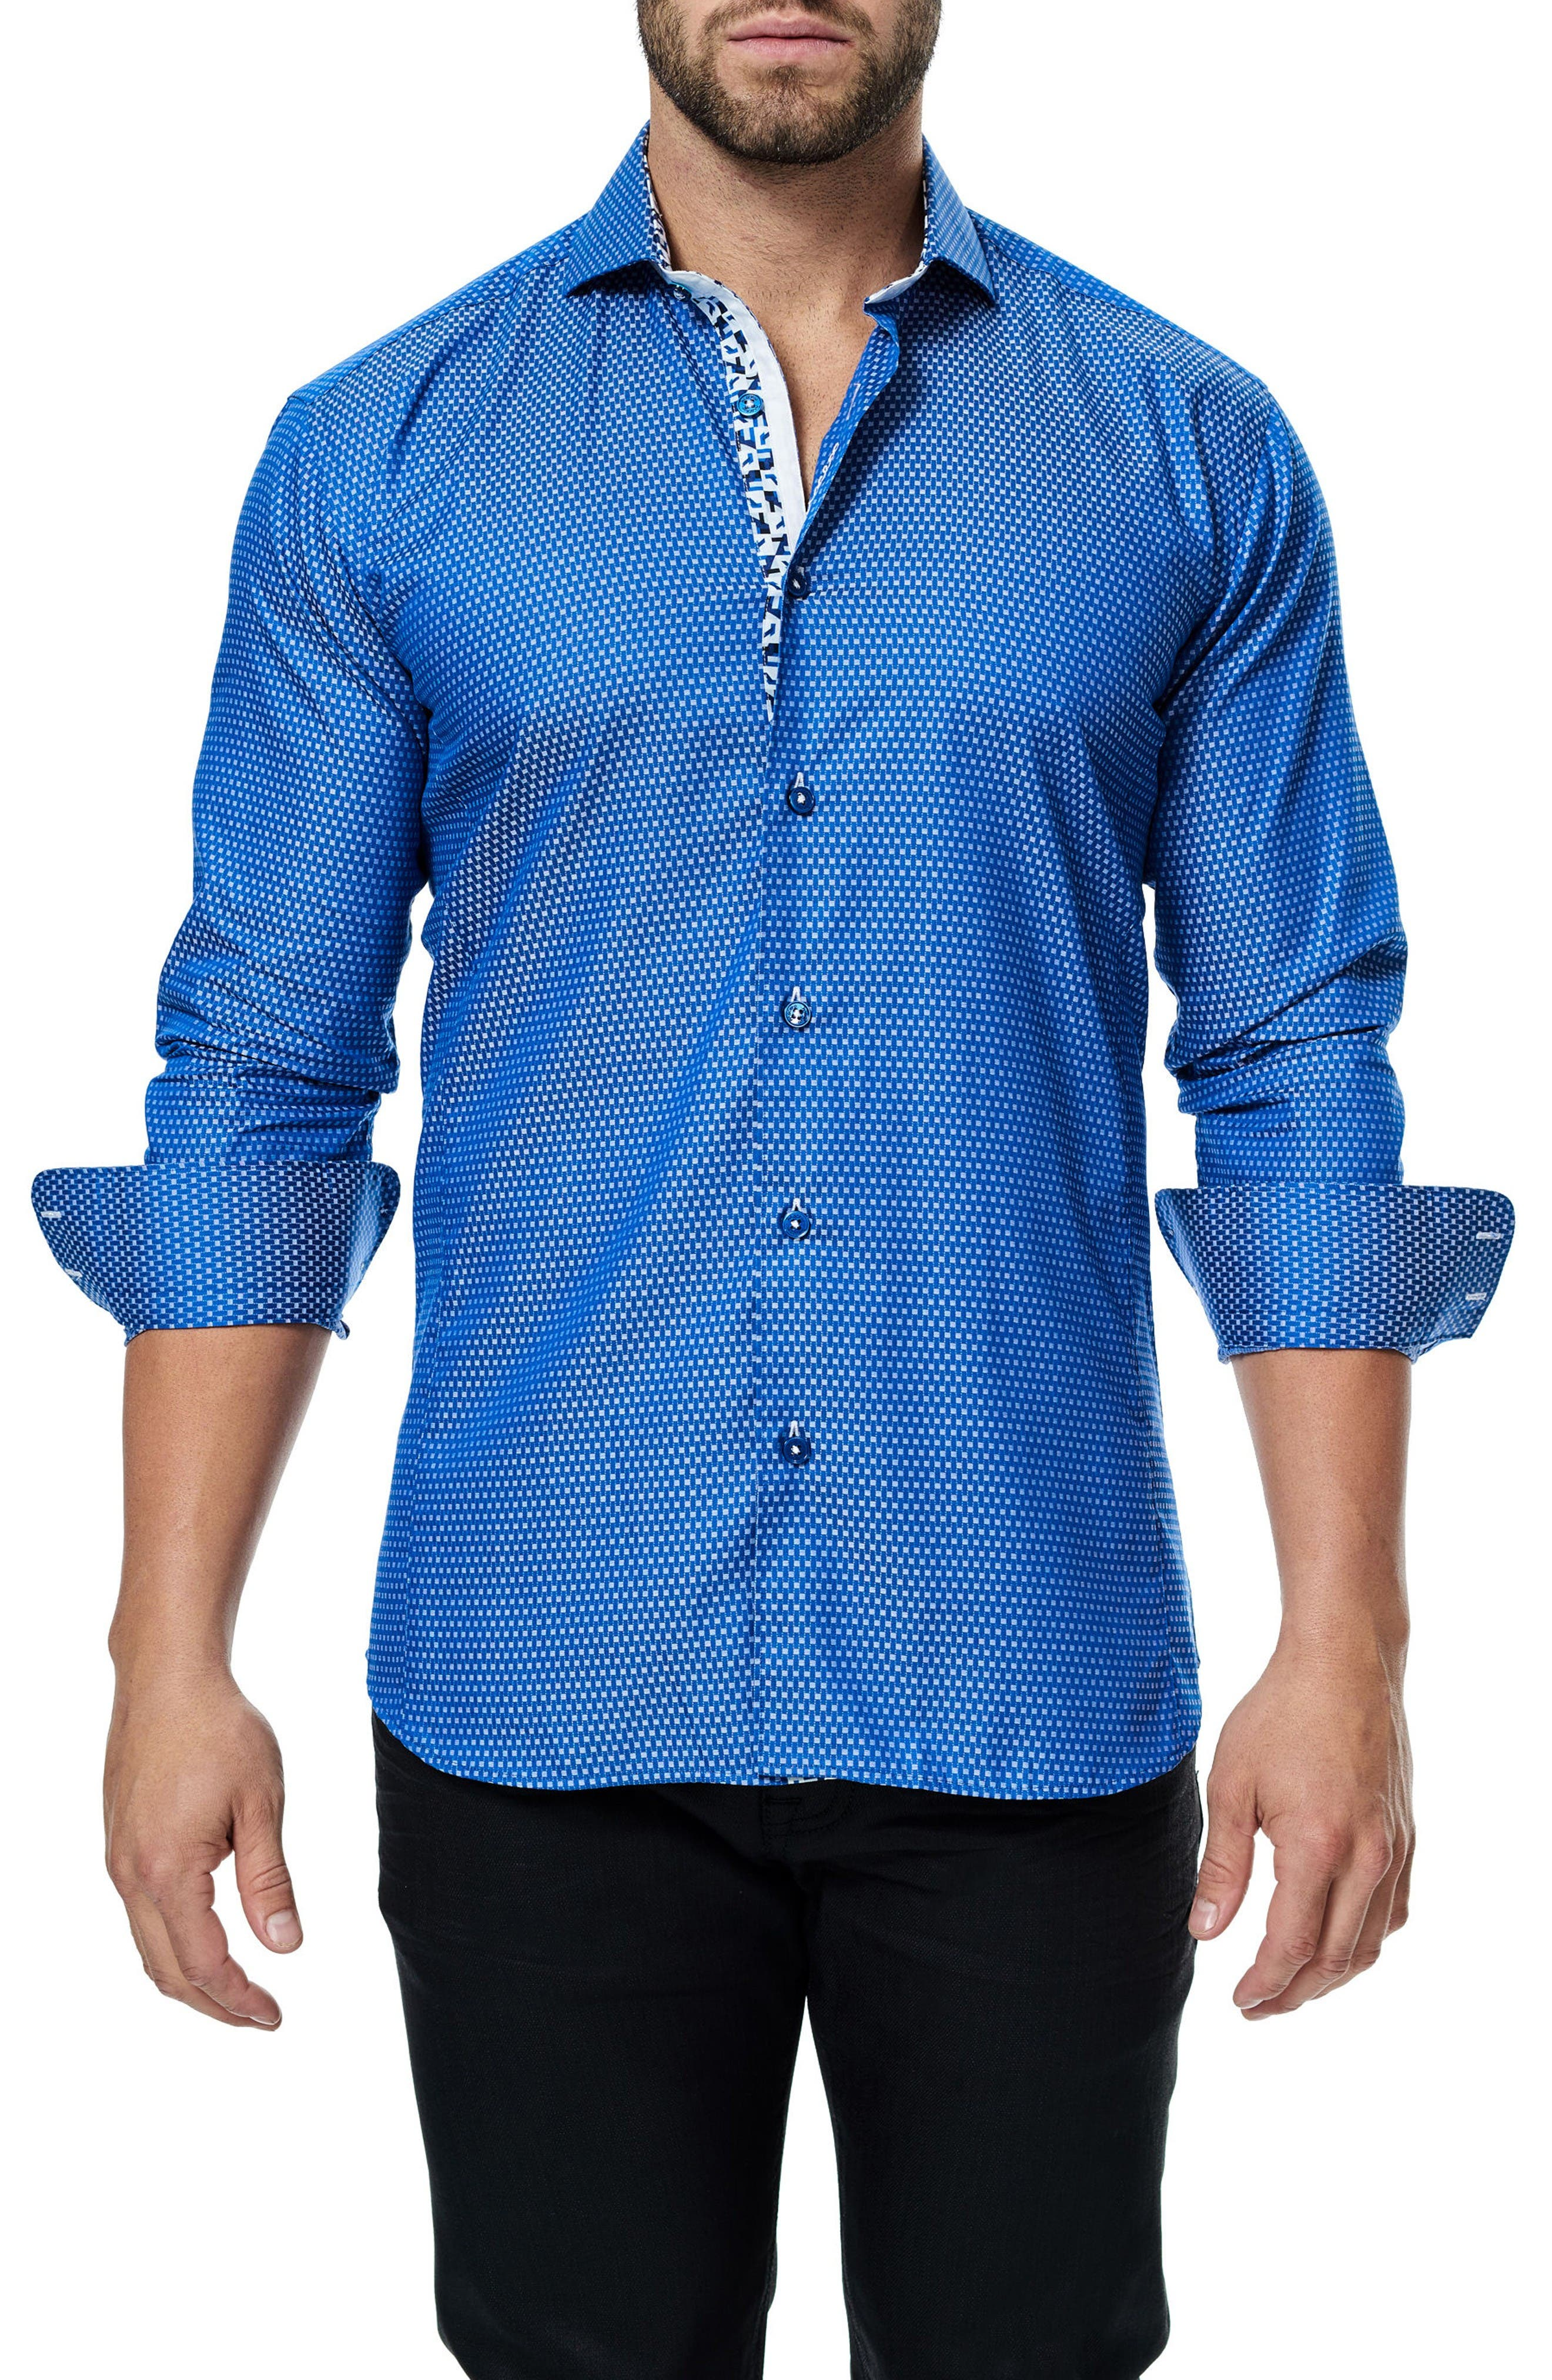 Wall Street Jacquard Sport Shirt,                         Main,                         color, Medium Blue